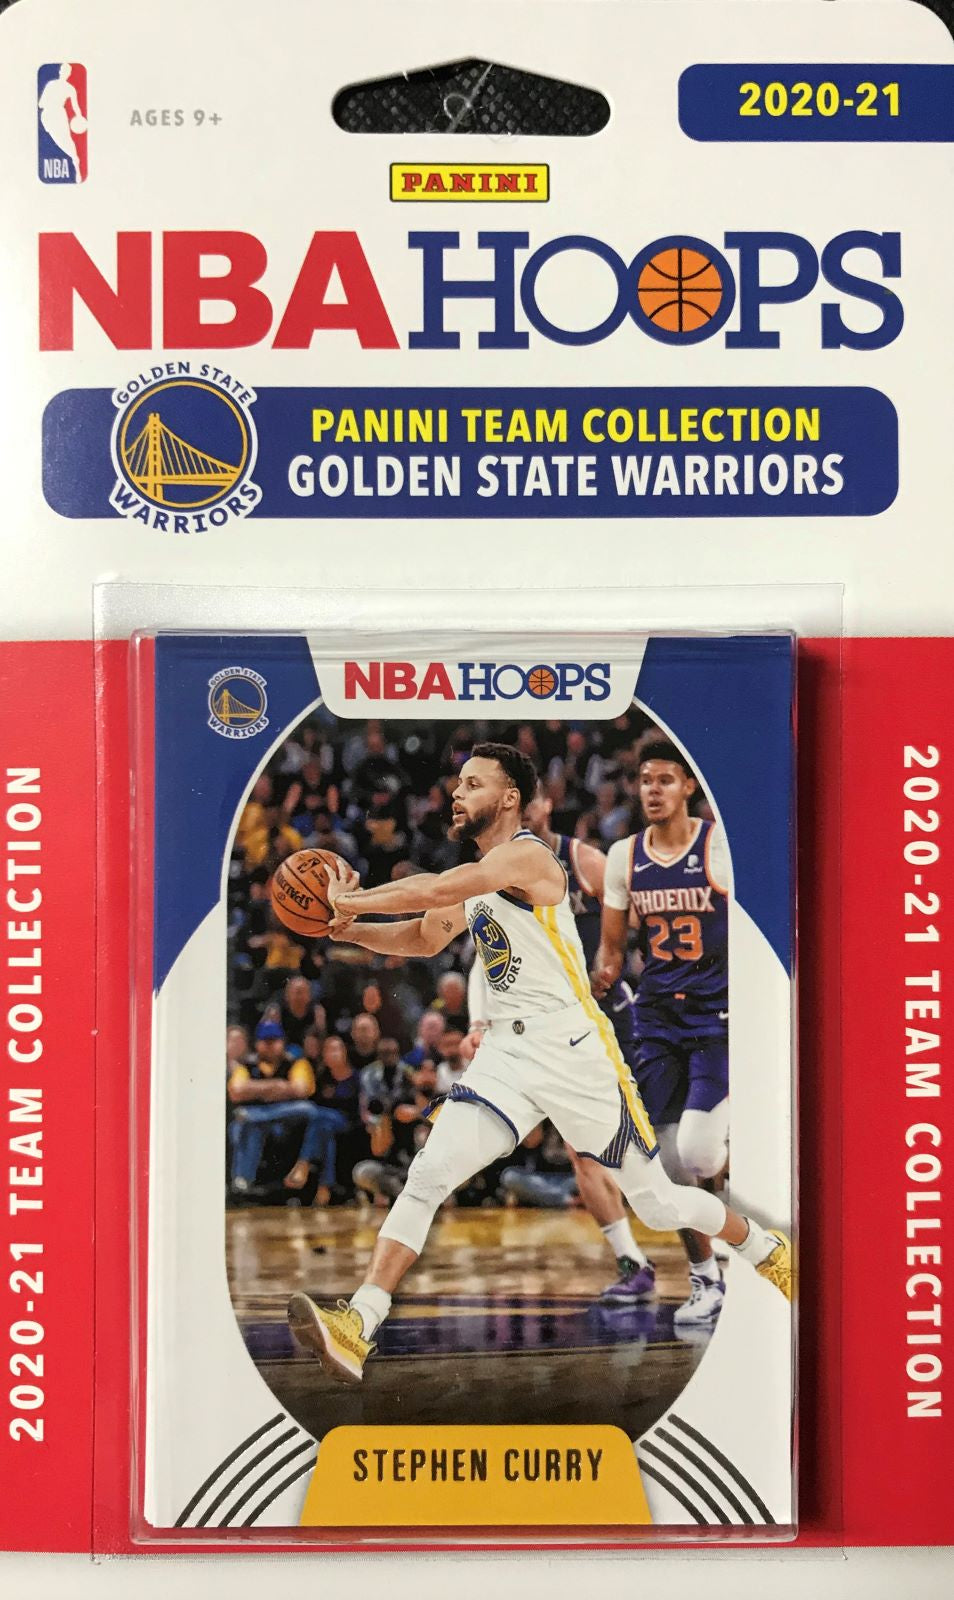 Golden State Warriors 2020 2021 Hoops Factory Sealed Team Set with Rookie Cards of James Wiseman and Nico Mannion